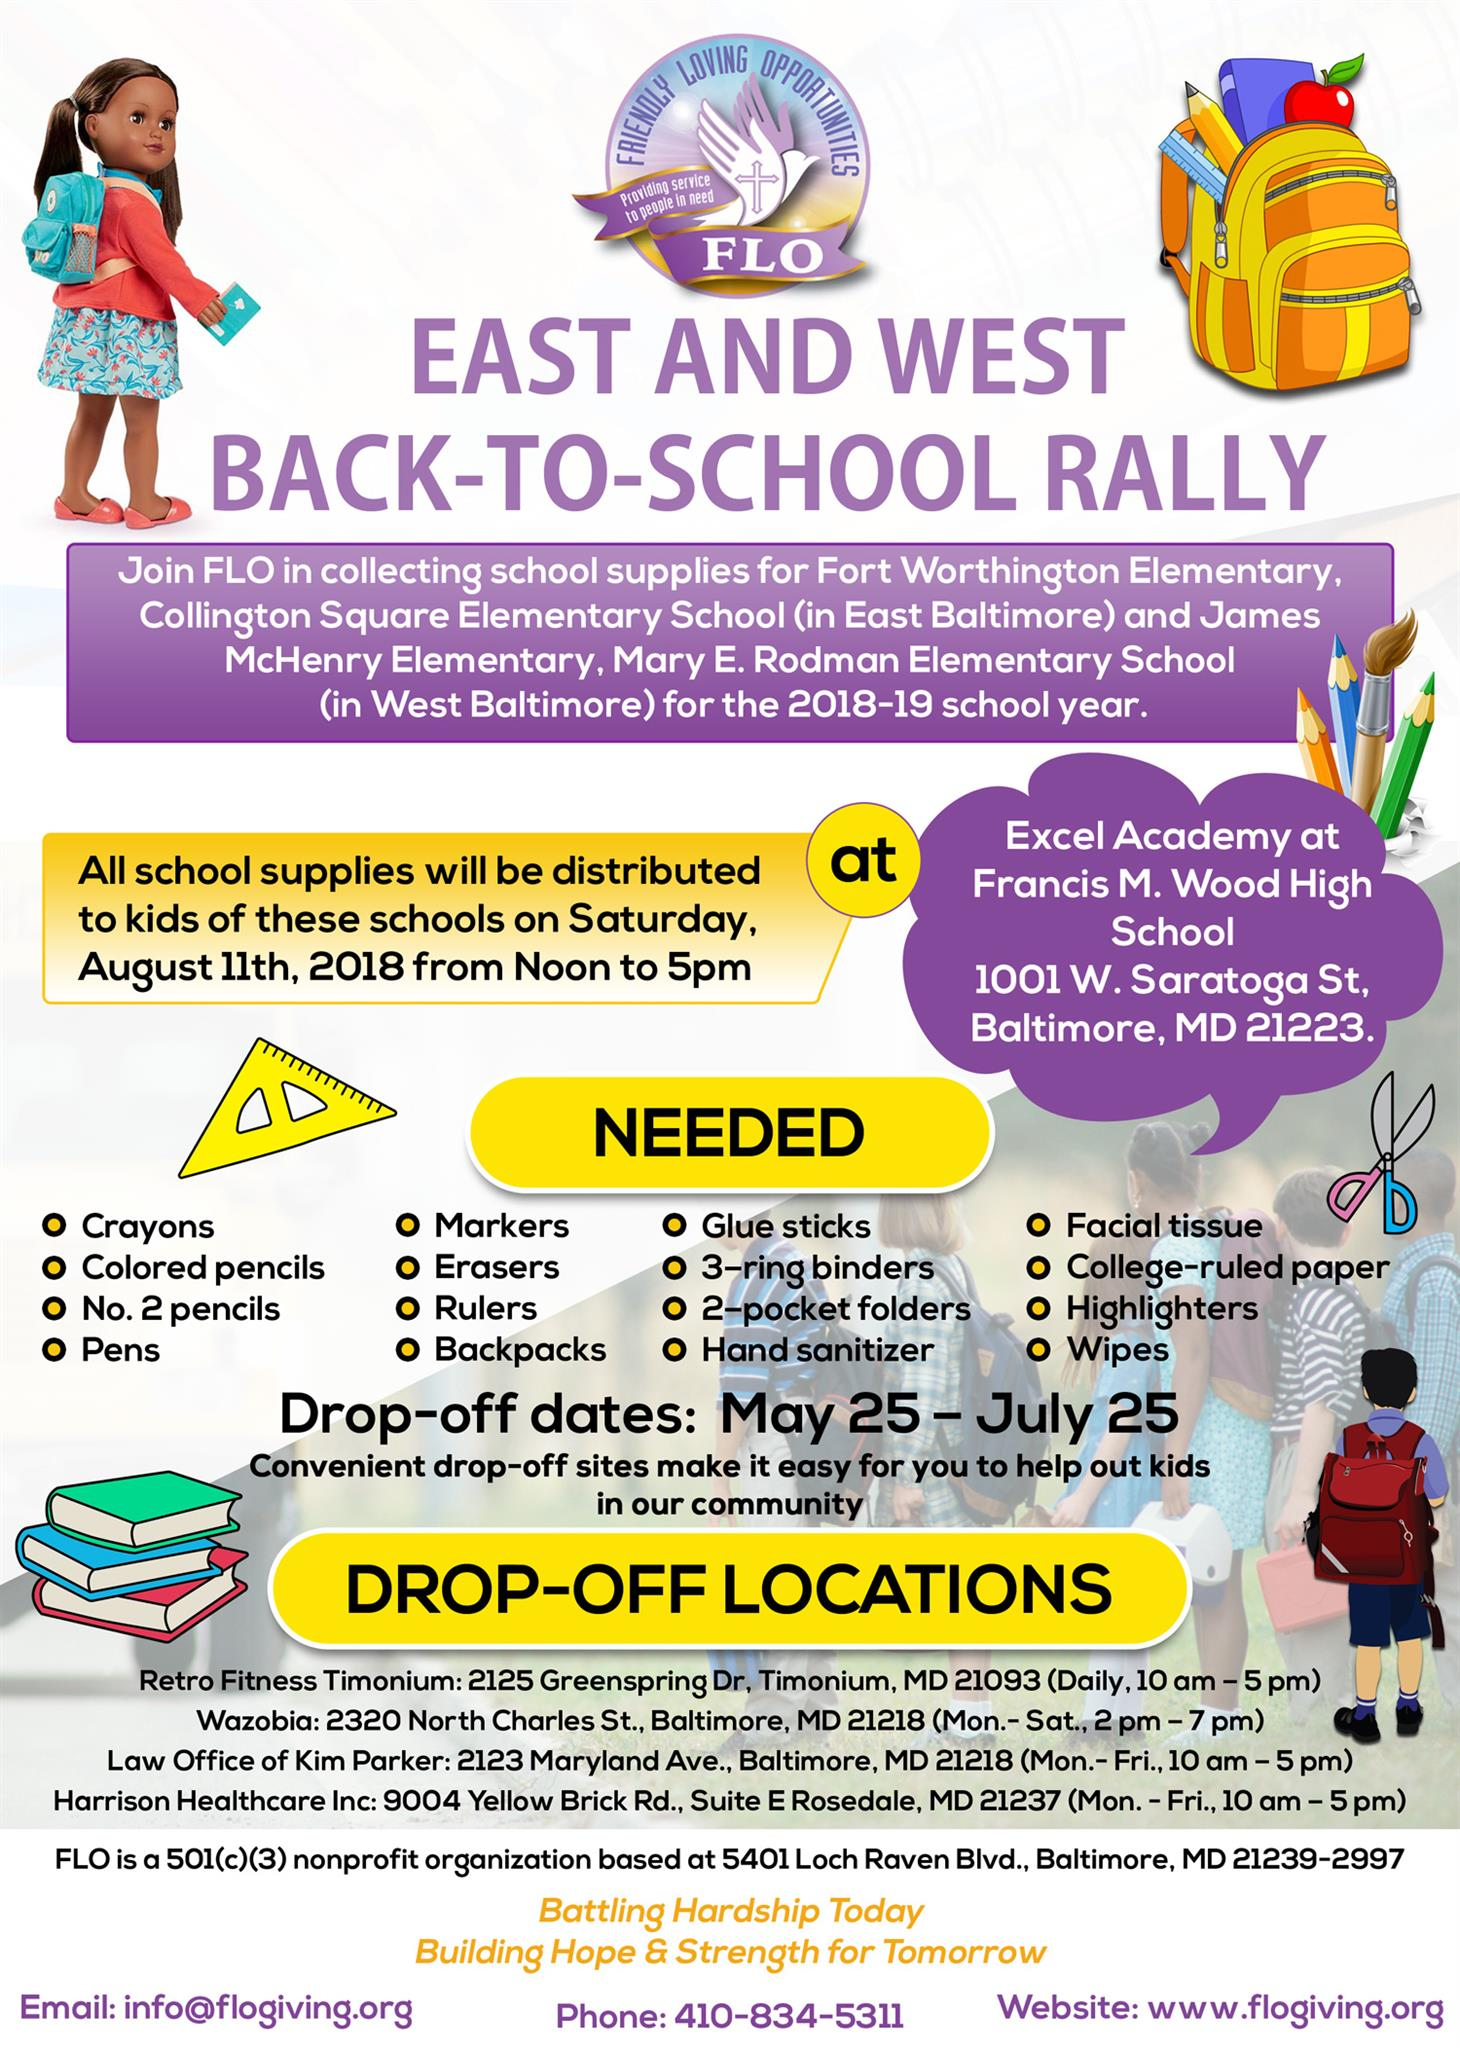 East and West Back to School Rally